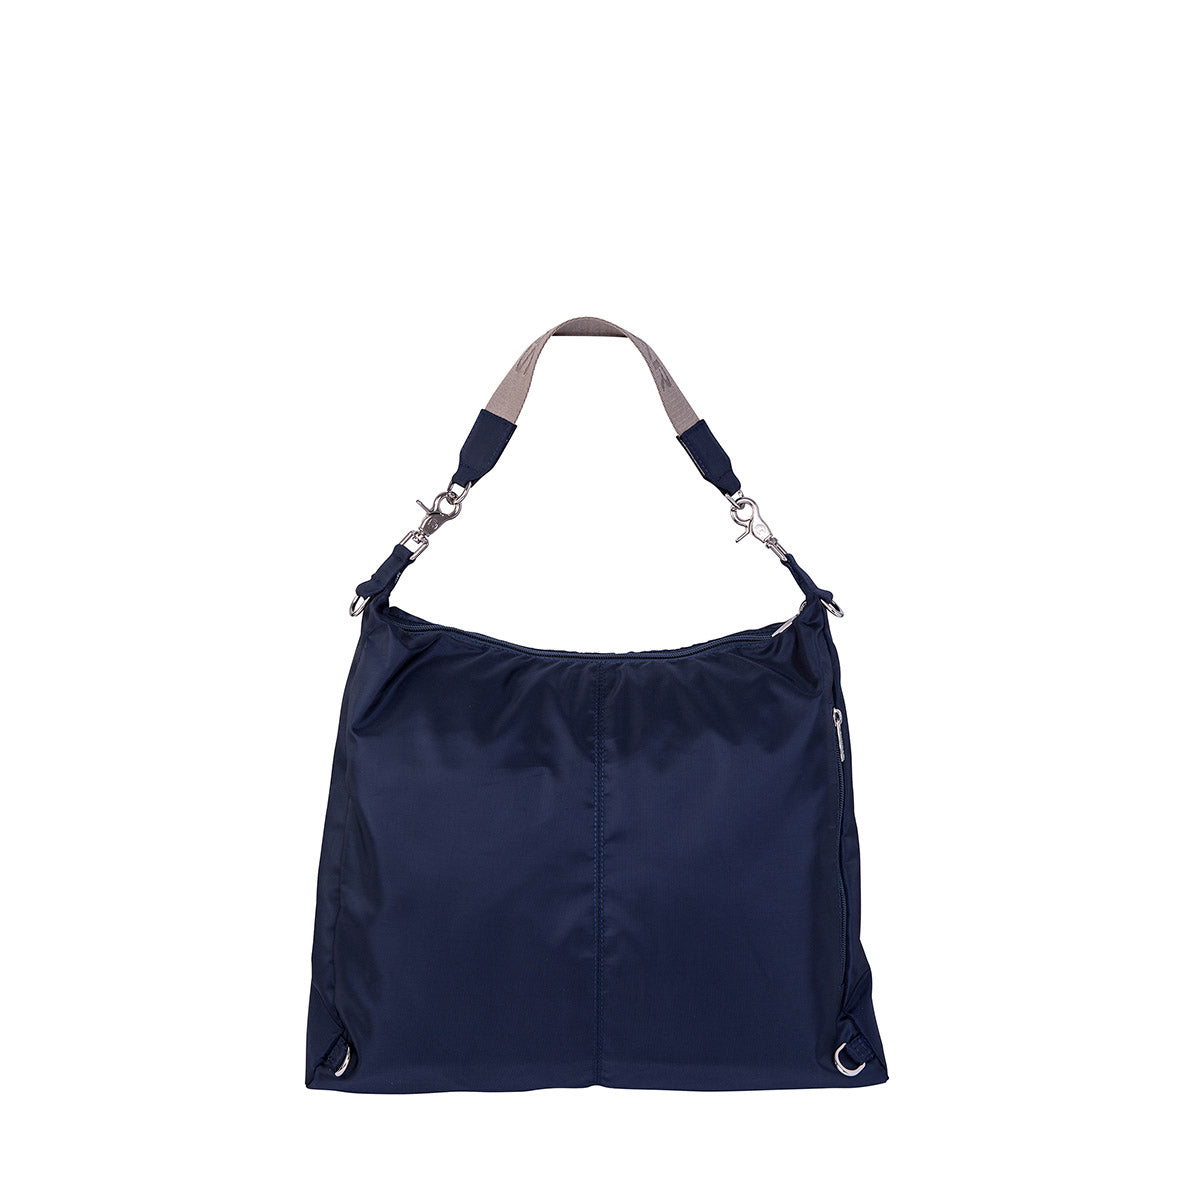 Irene Navy Blue